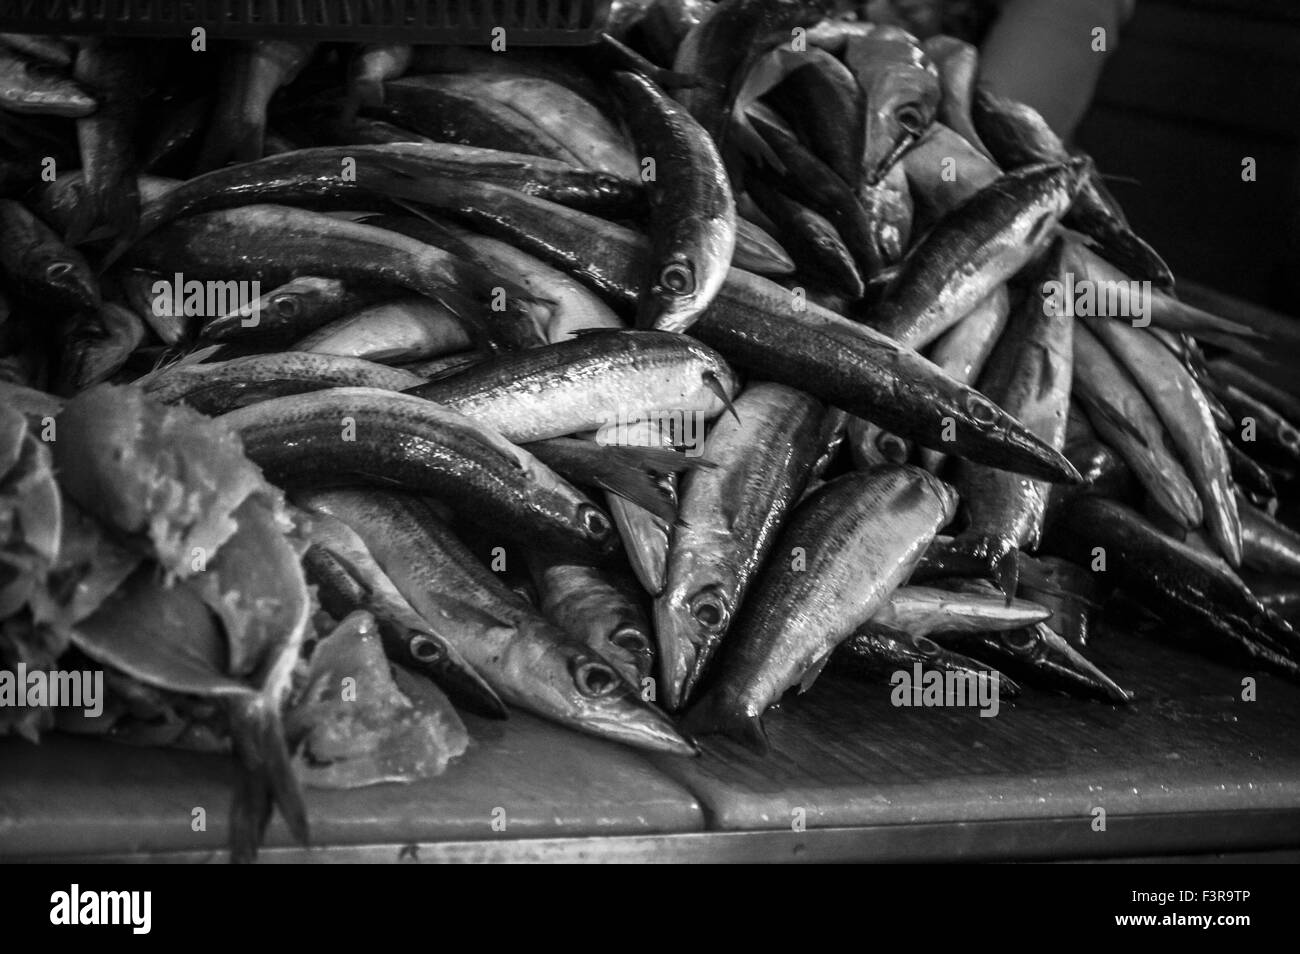 Fish - Stock Image